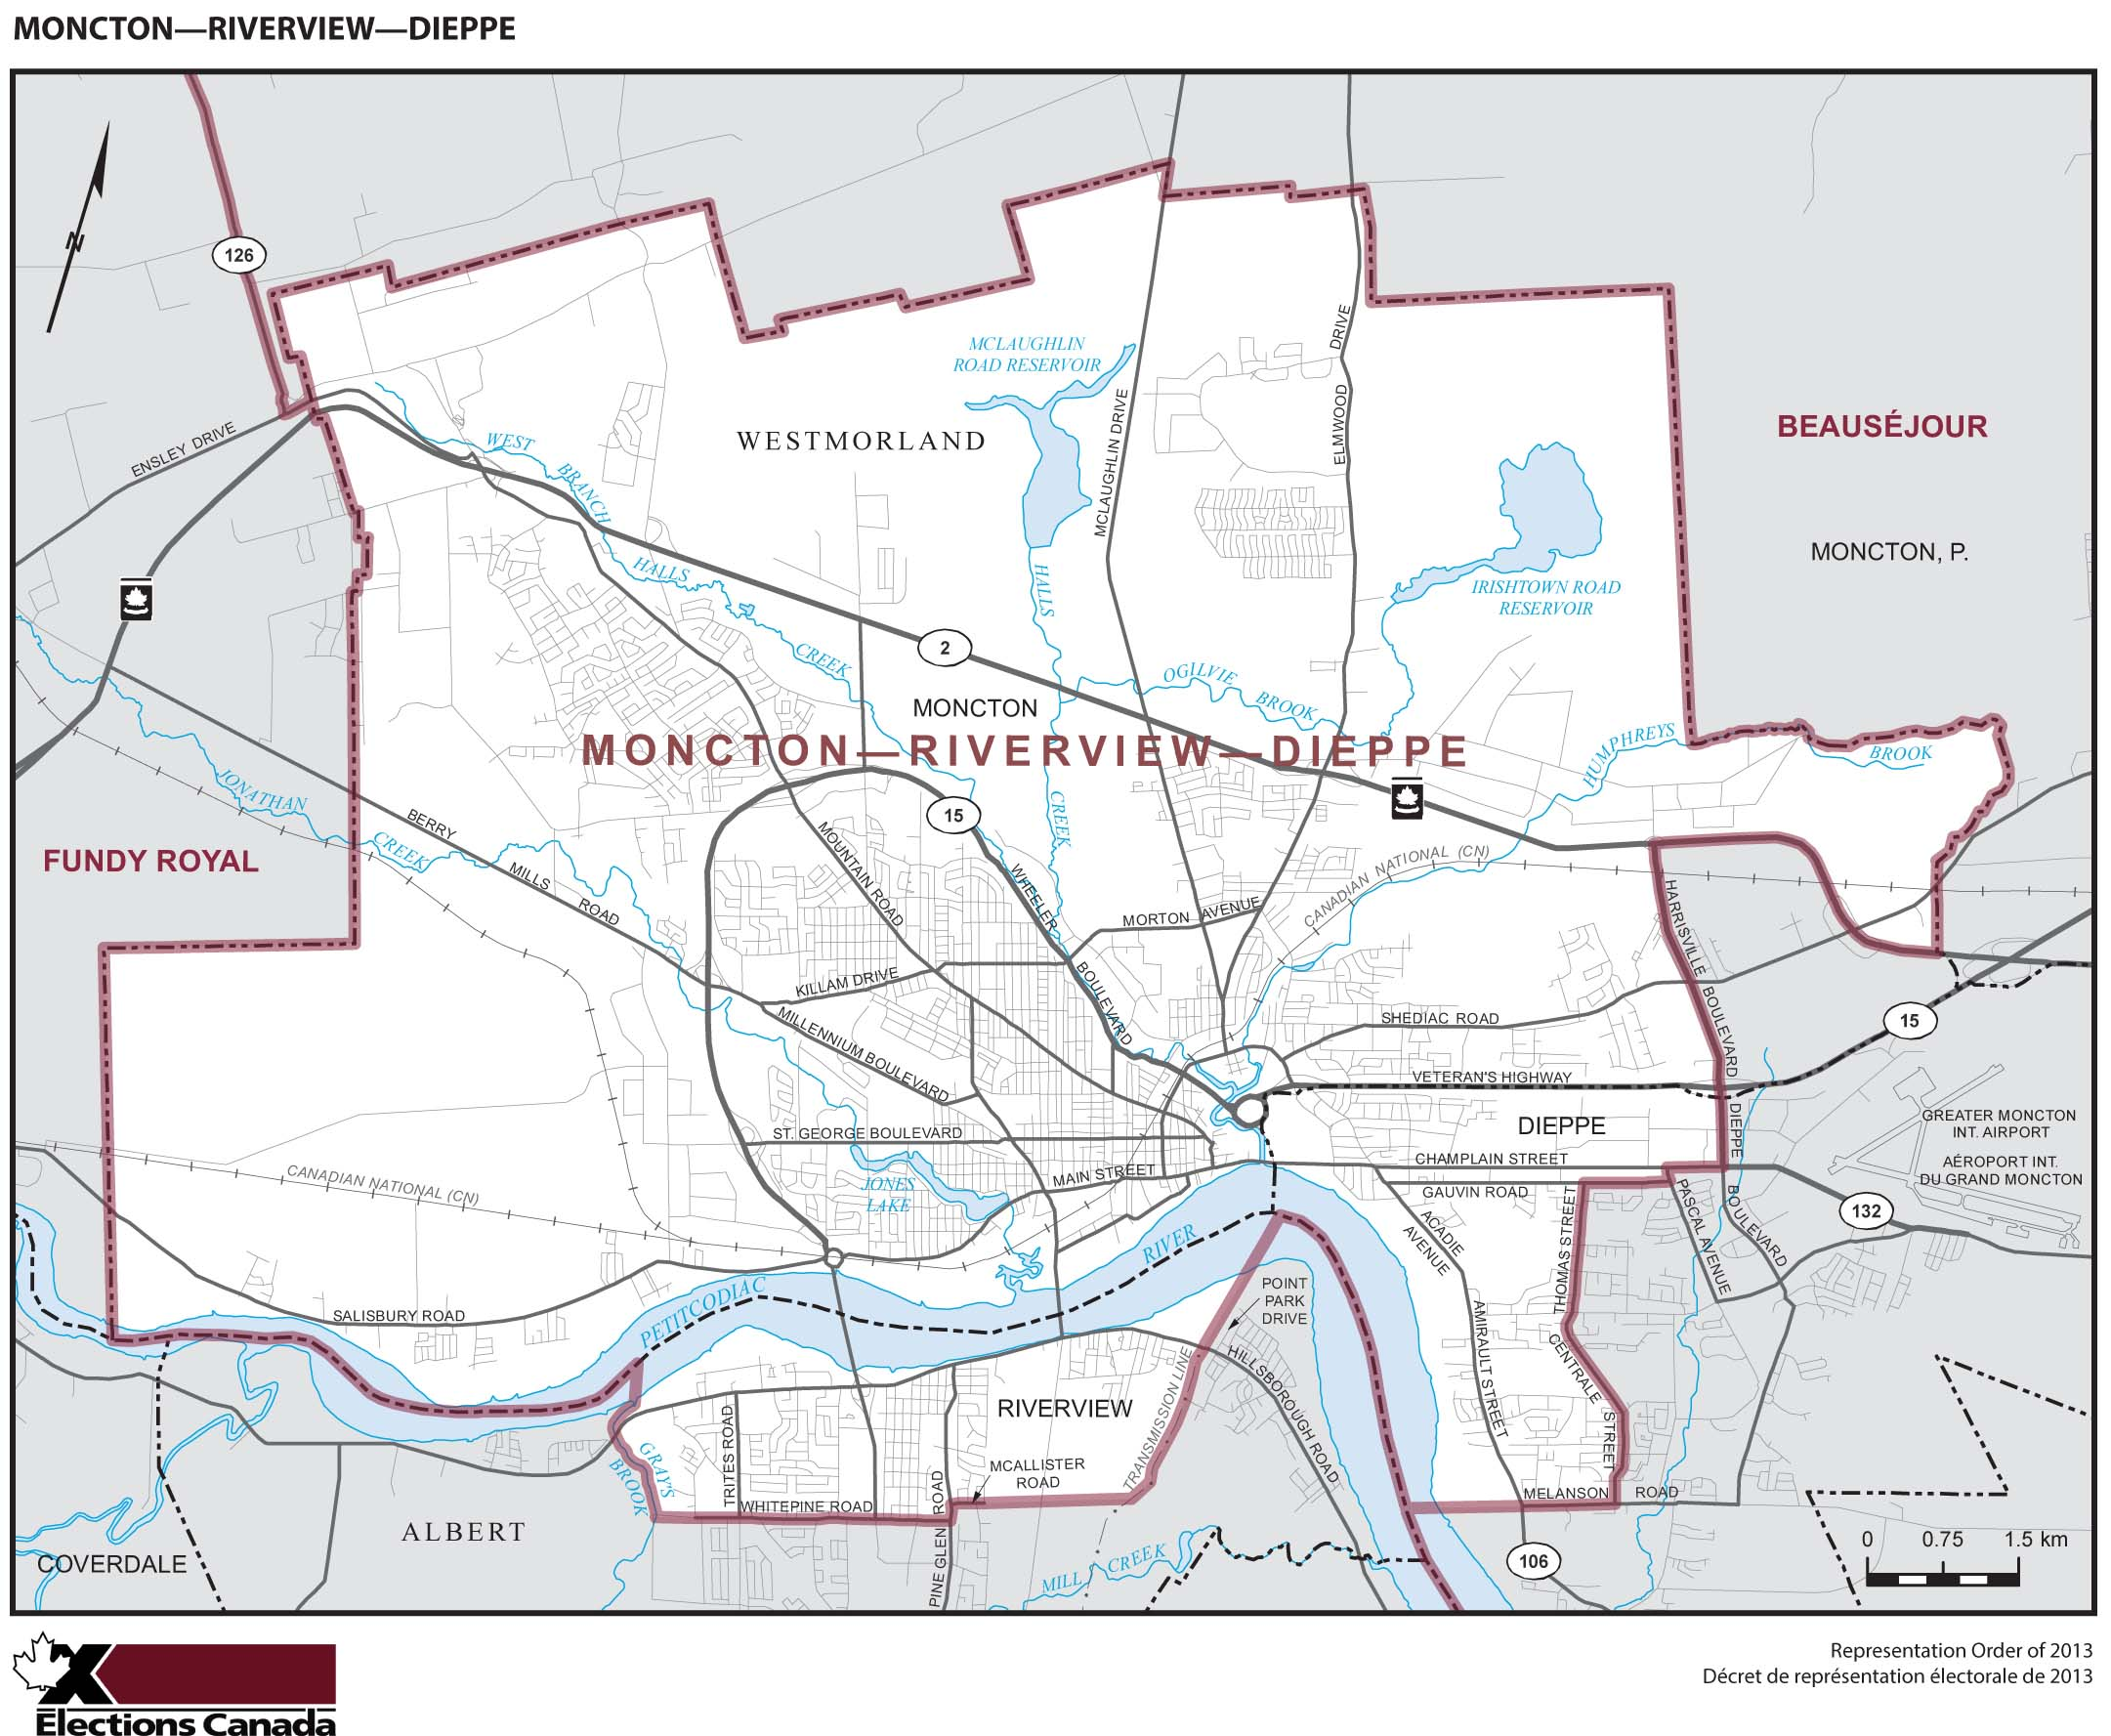 Map: Moncton--Riverview--Dieppe, Federal electoral district, 2013 Representation Order (in white), New Brunswick